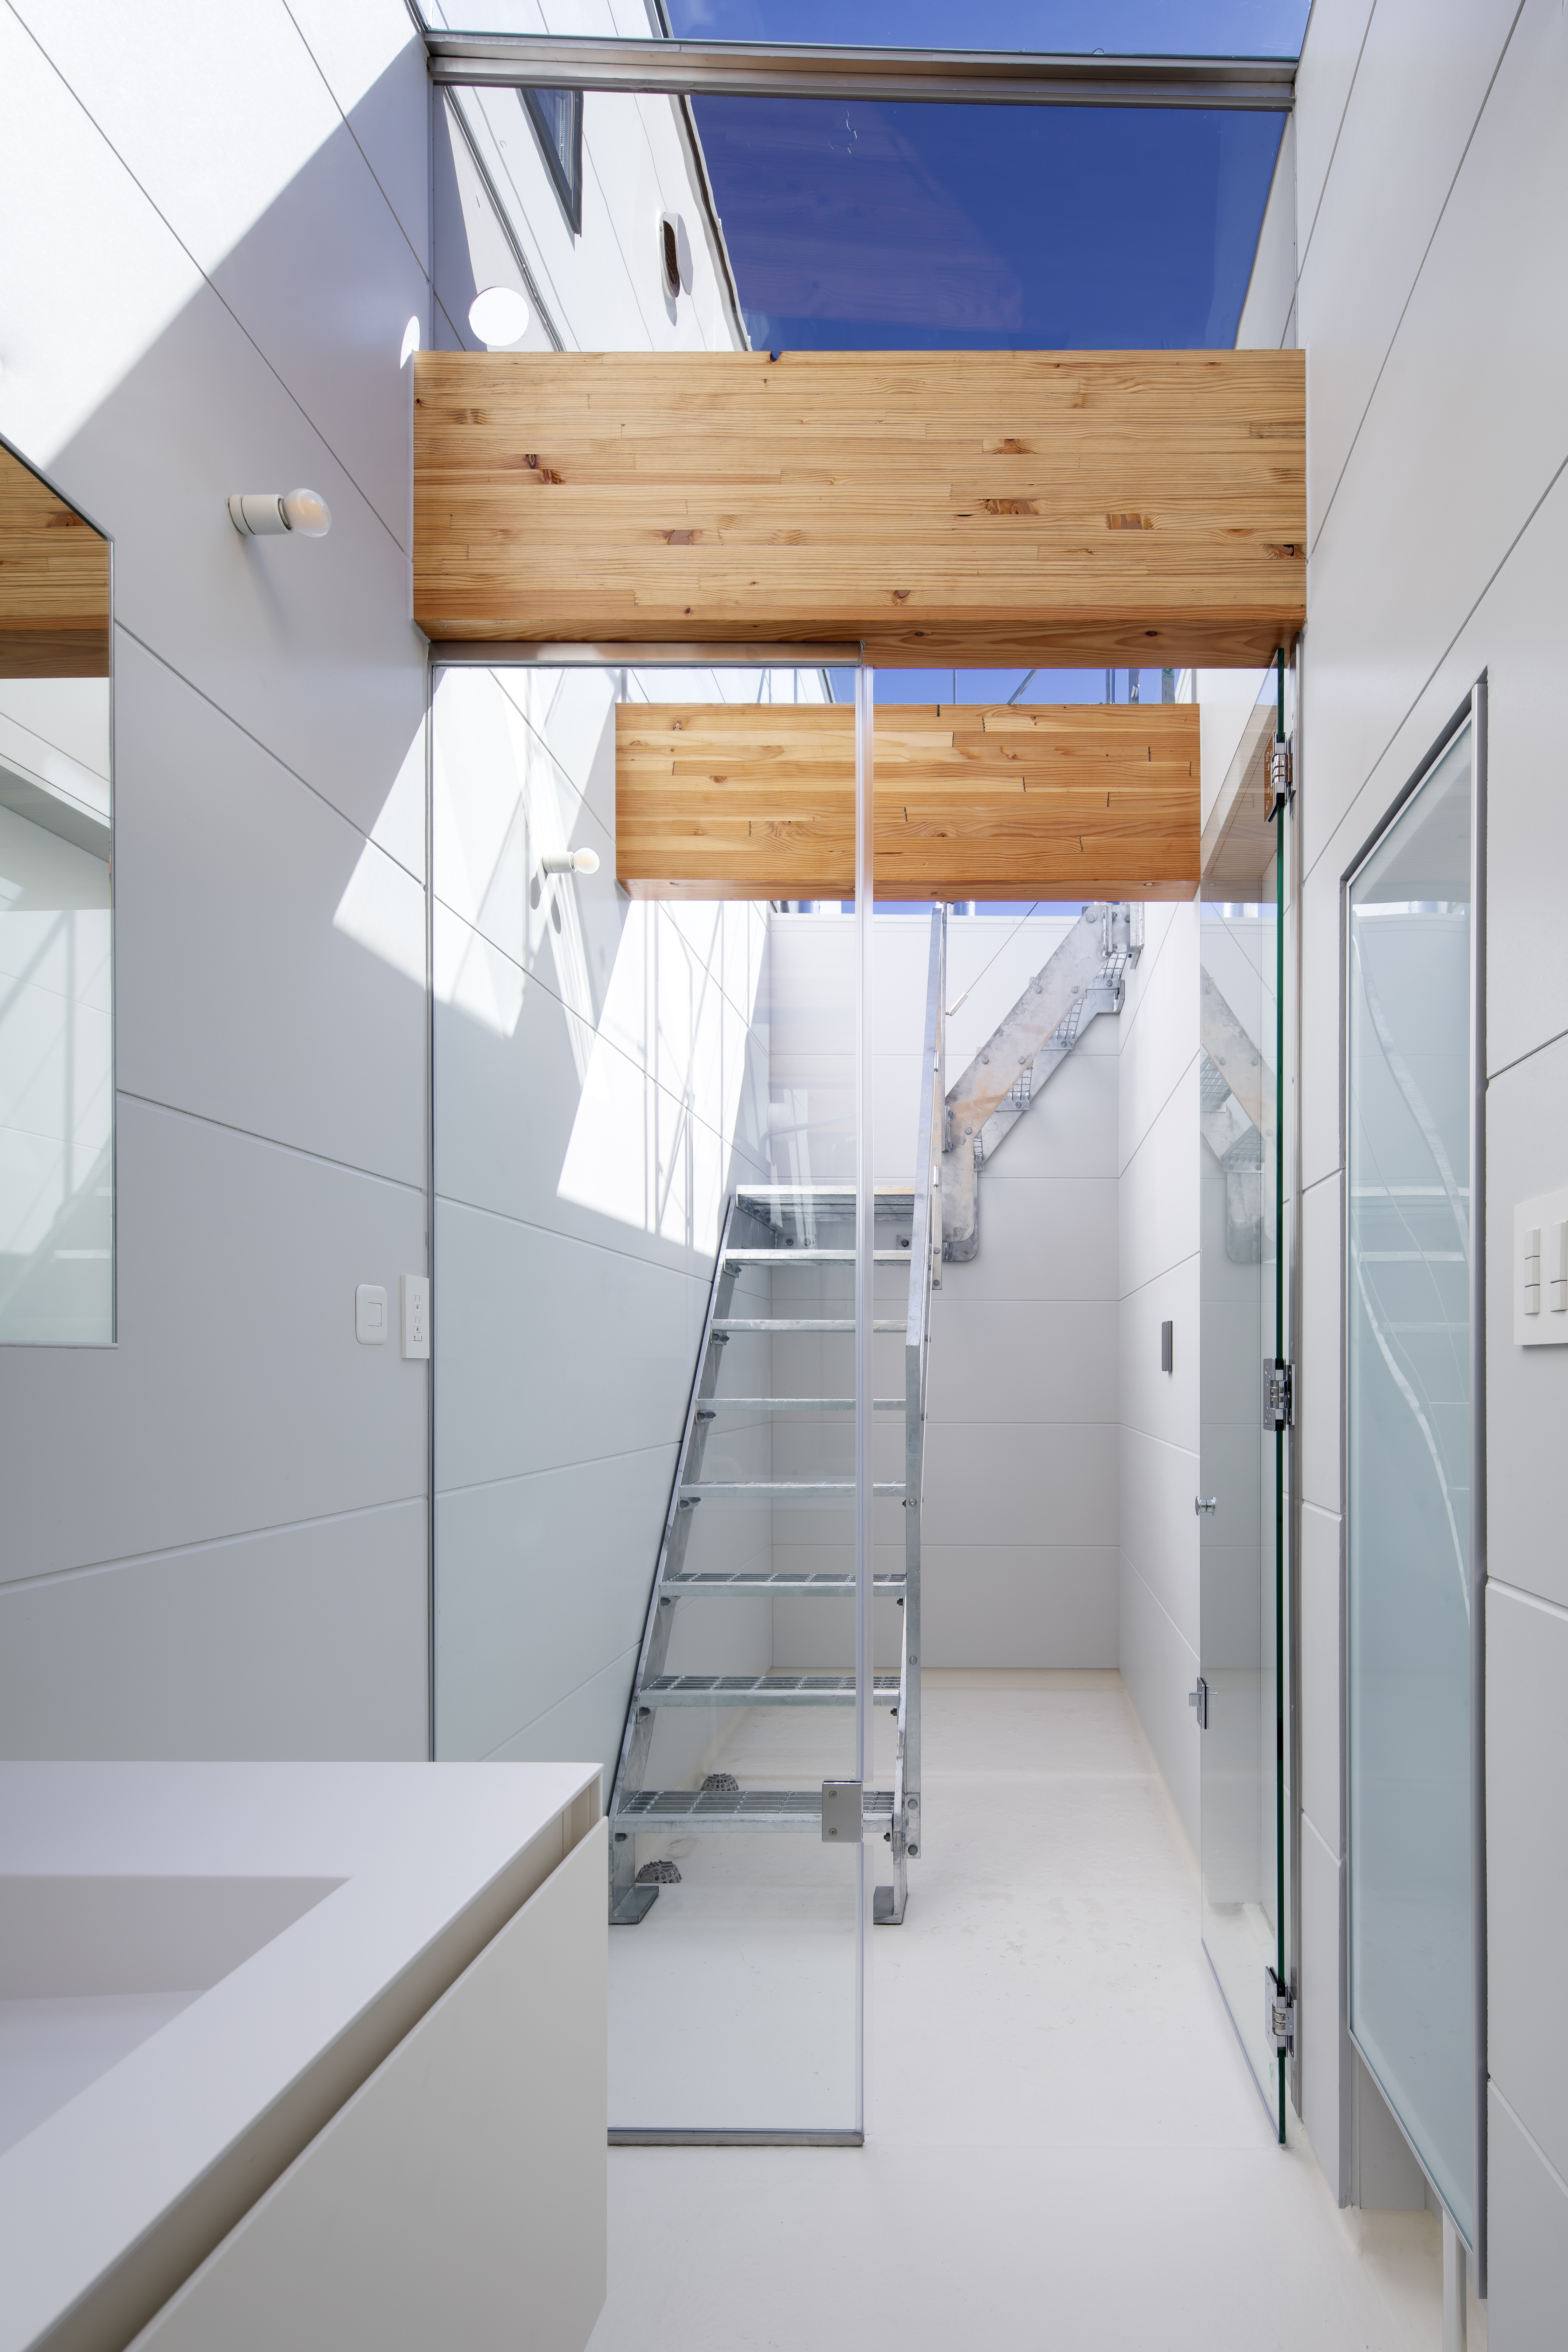 Sky View Living Space with stairs to the roof terrace